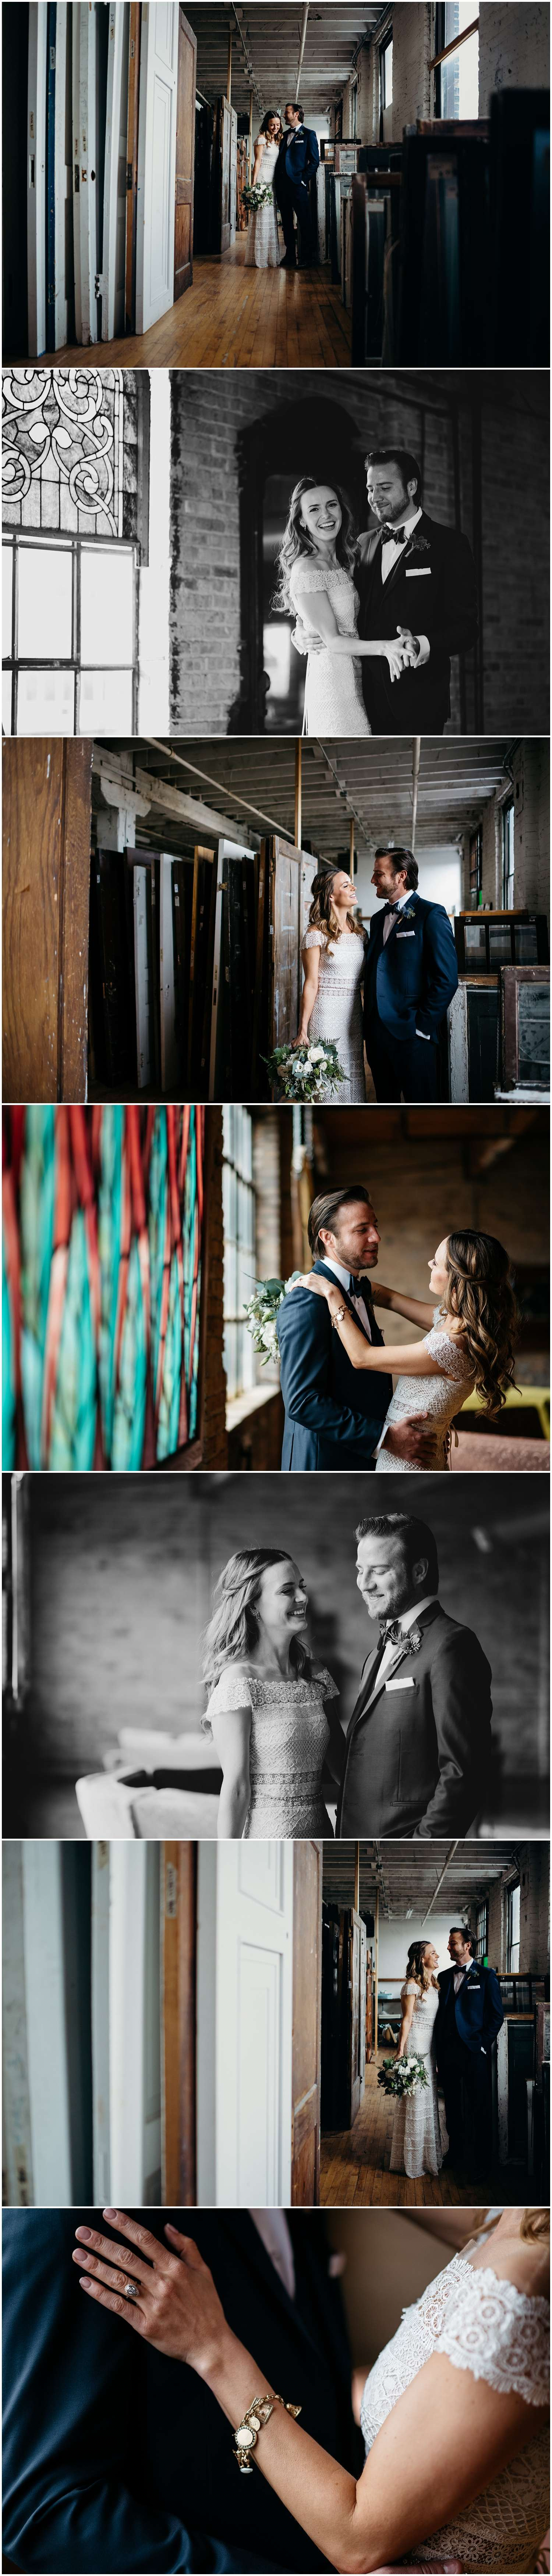 wedding photographer, chicago wedding photographer, chicago wedding, iron and honey, travel, travel photographer, elopement, elope, intimate wedding photographer, intimate wedding, elopement photographer, adventure photographer, travel bucket list, photography travel bucket list, adventure, bucket list, photographer, small wedding, small wedding photographer, italy, italy wedding photographer, iceland, iceland wedding photographer, iceland wedding, italy wedding, italian wedding, italian wedding photographer, greece, greece wedding photographer, Grecian wedding photographer, grecian wedding, banff, alberta, canada, banff wedding, lake como, Amalfi coast, hawaii, scotland, germany, new zealand, new zealand wedding photographer, new zealand wedding, yosemite national park, yosemite national park wedding, moab, utah, moab wedding, joshua tree, joshua tree wedding, joshua tree wedding photographer, salvage one wedding, salvage one, salvage one wedding photographer, salvage one wedding photos